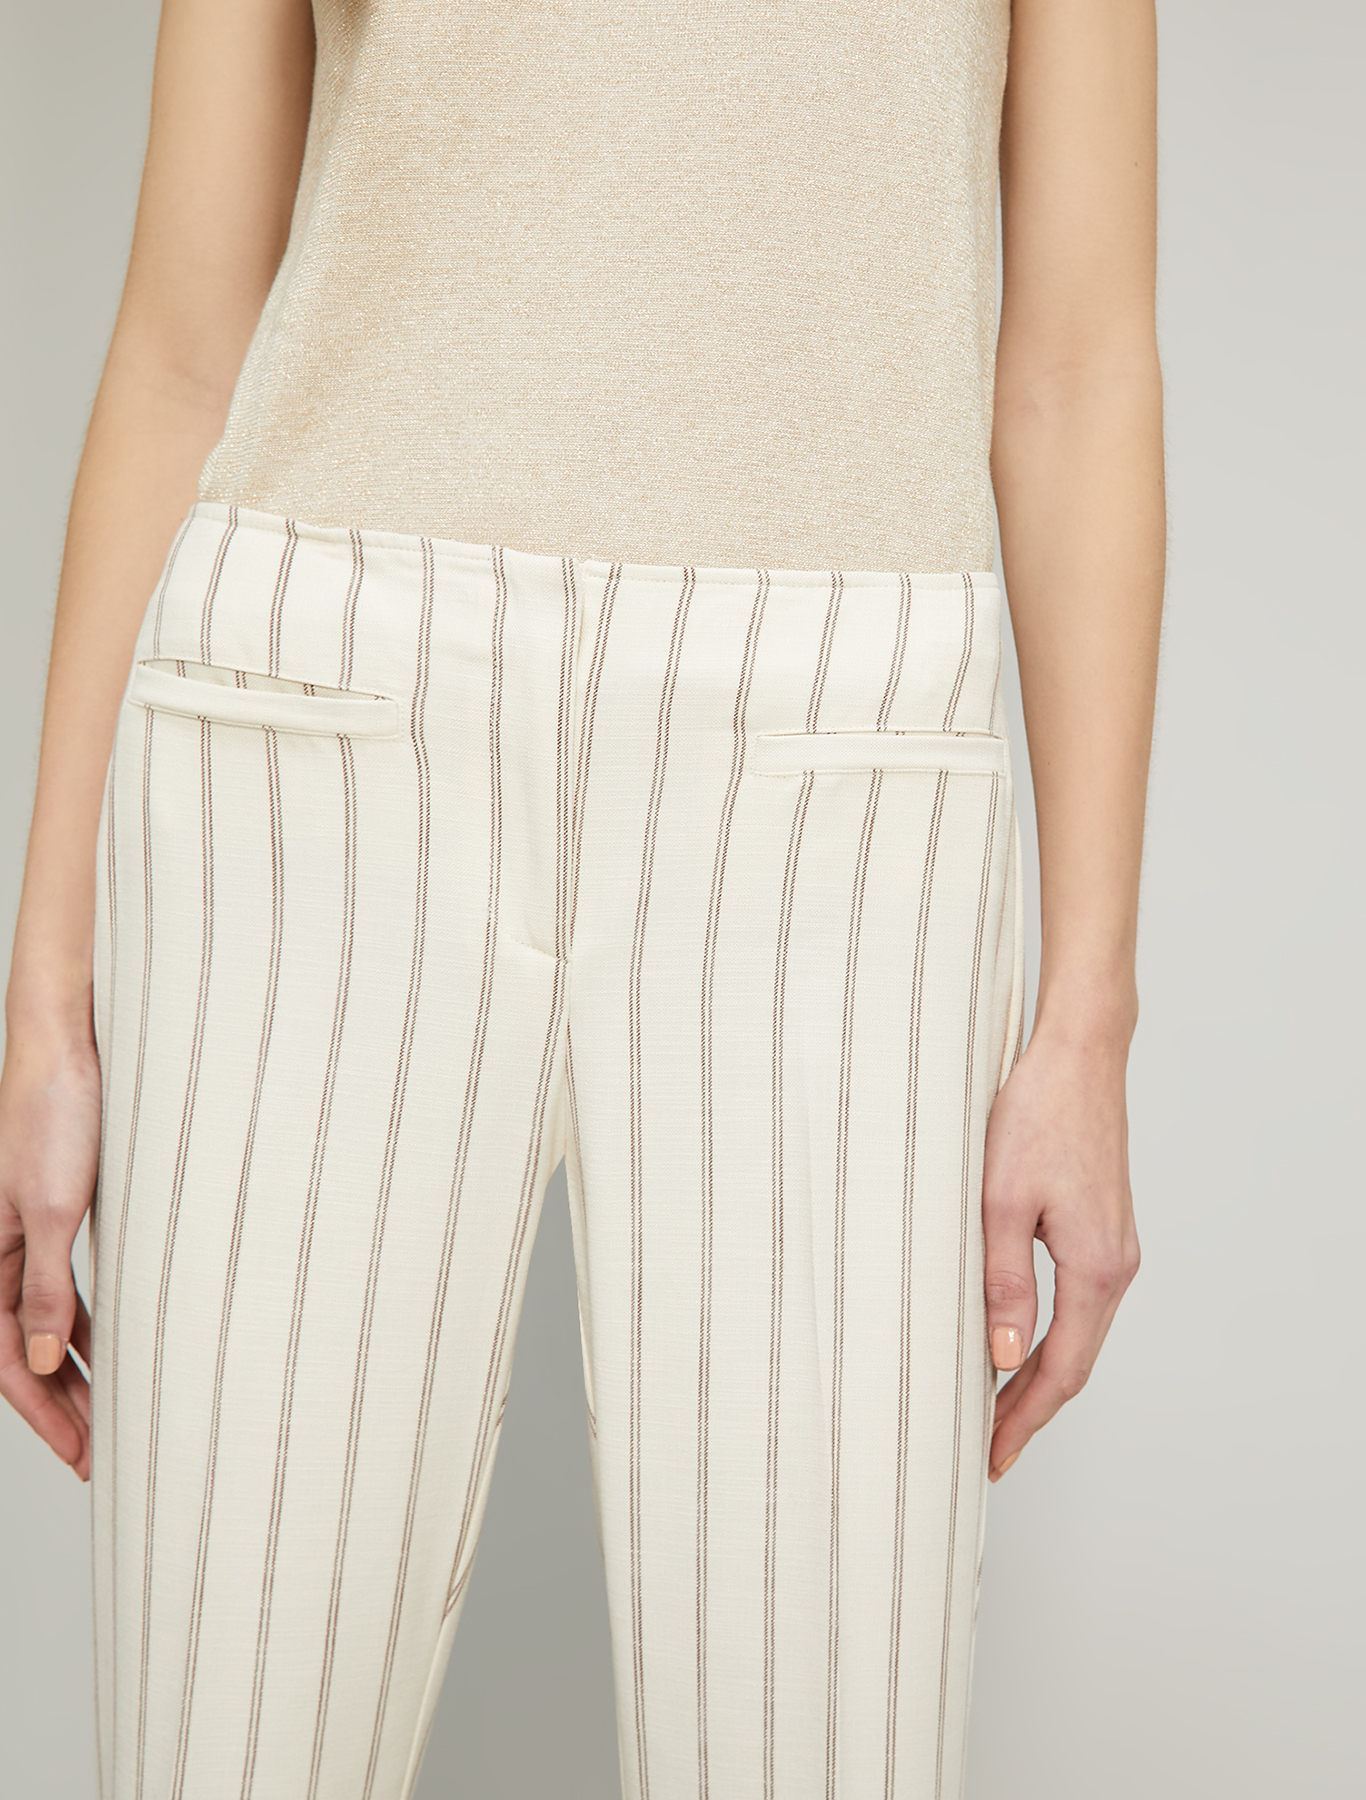 Slubbed basketweave trousers - beige pattern - pennyblack